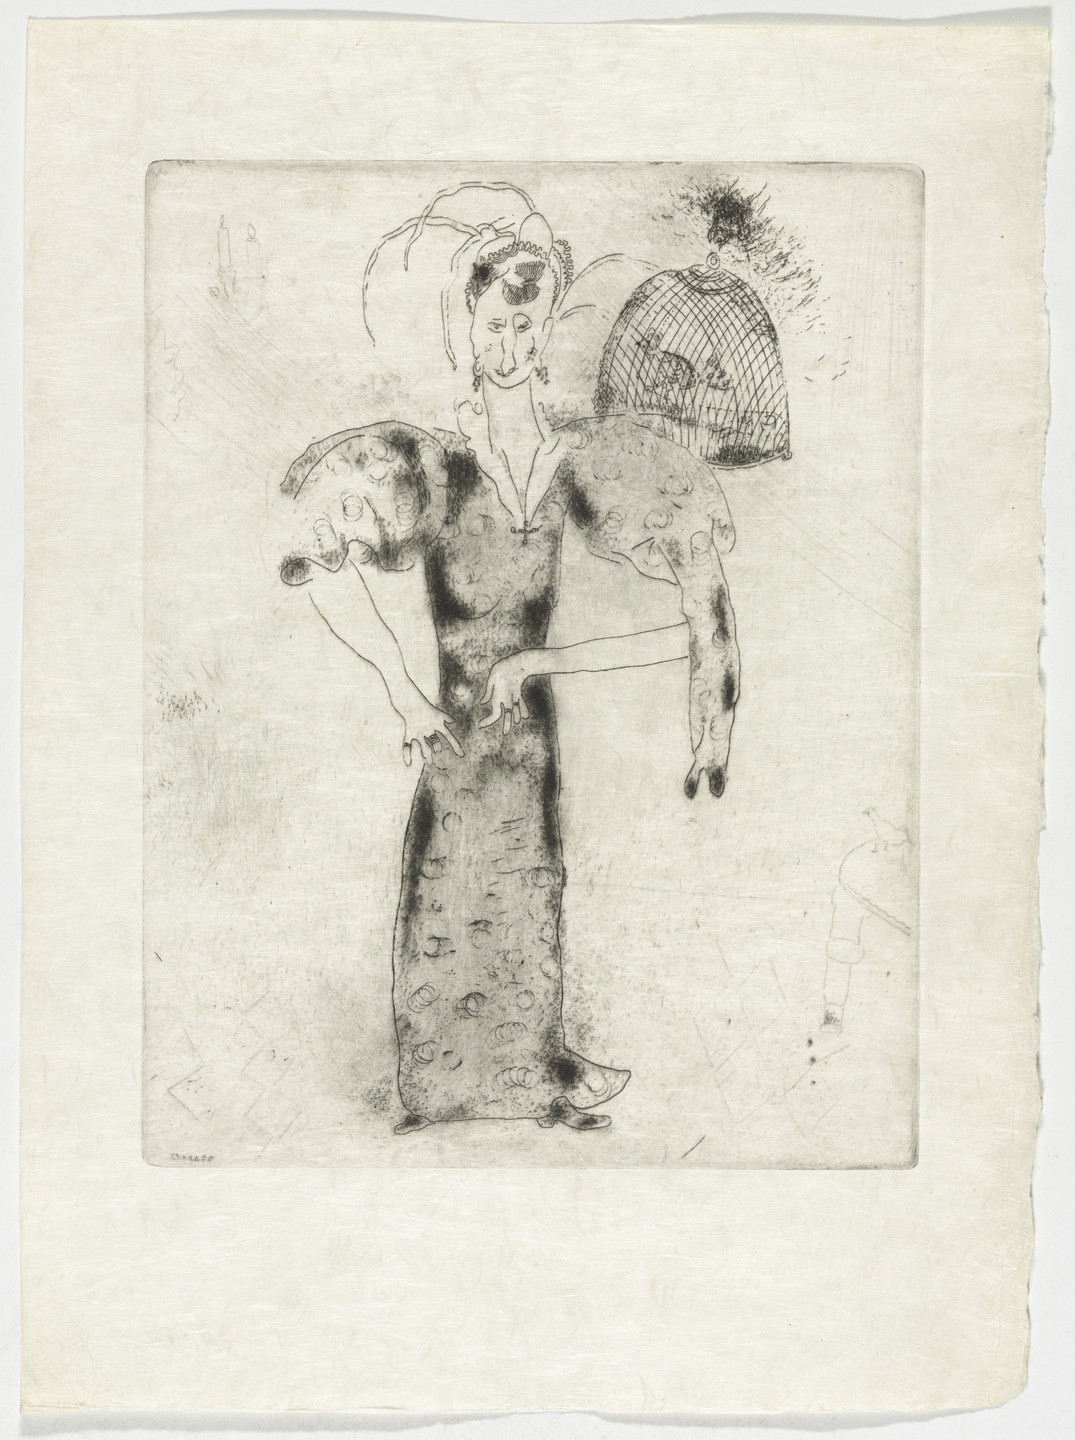 Marc Chagall. Madame Sobakévitch, plate XXXIII (supplementary suite) from Les Âmes mortes. 1923-48